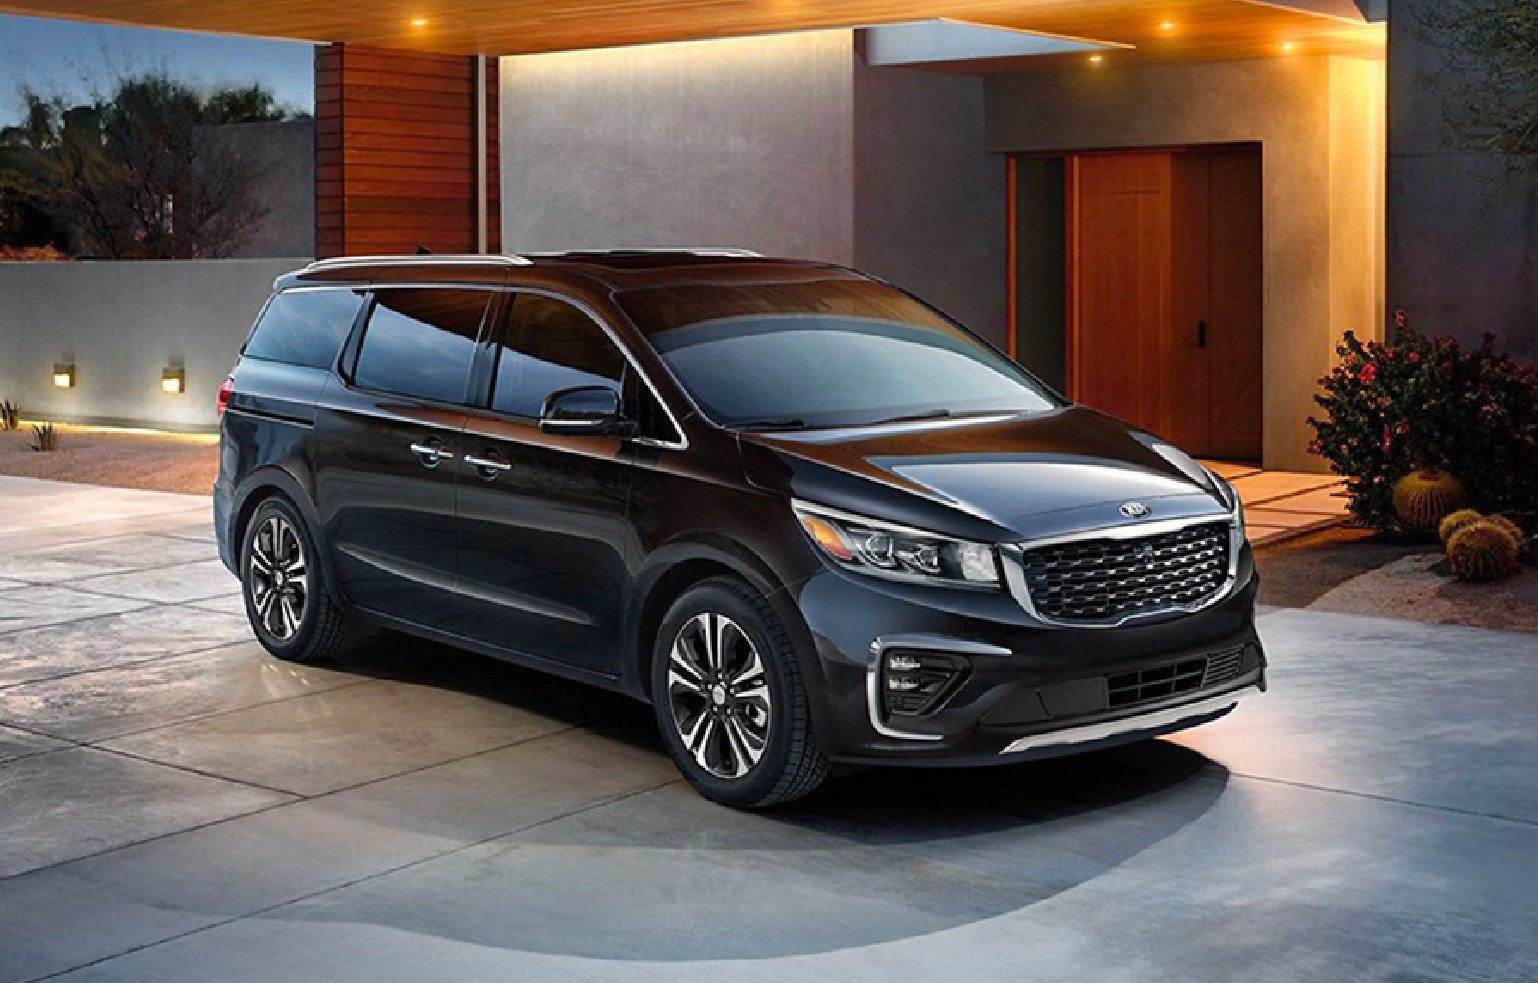 2020 Kia Sedona is the perfect family vehicle mississauga kia